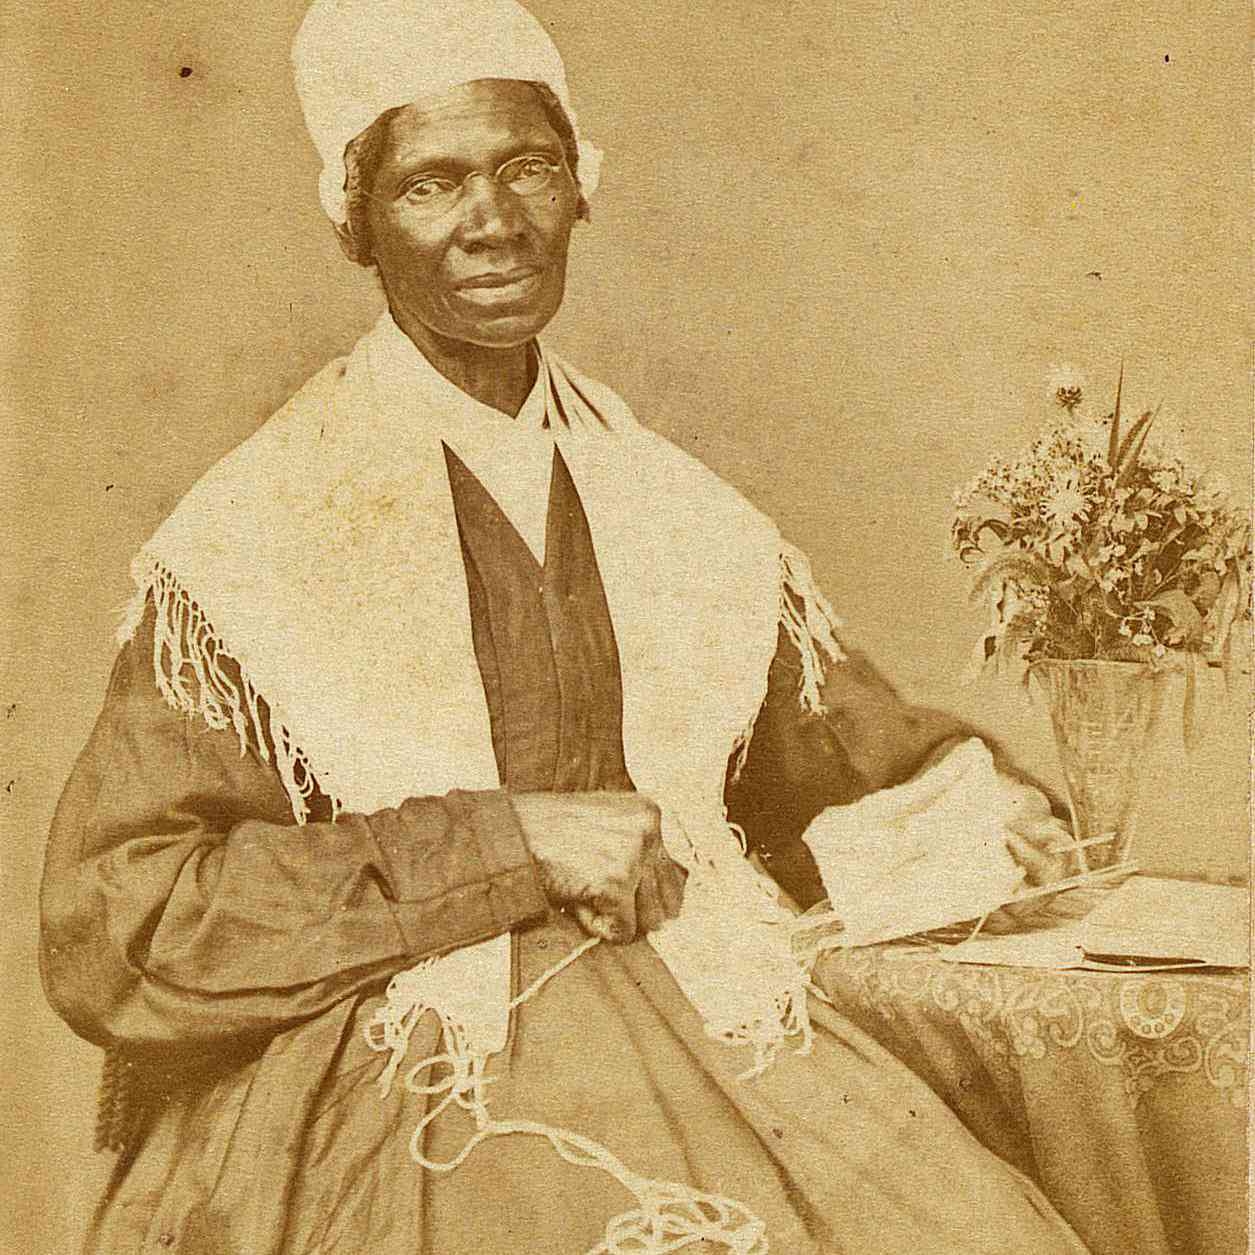 Portrait of Sojourner Truth, a Black activist and intellectual who influenced the development of feminist theory and sociology.